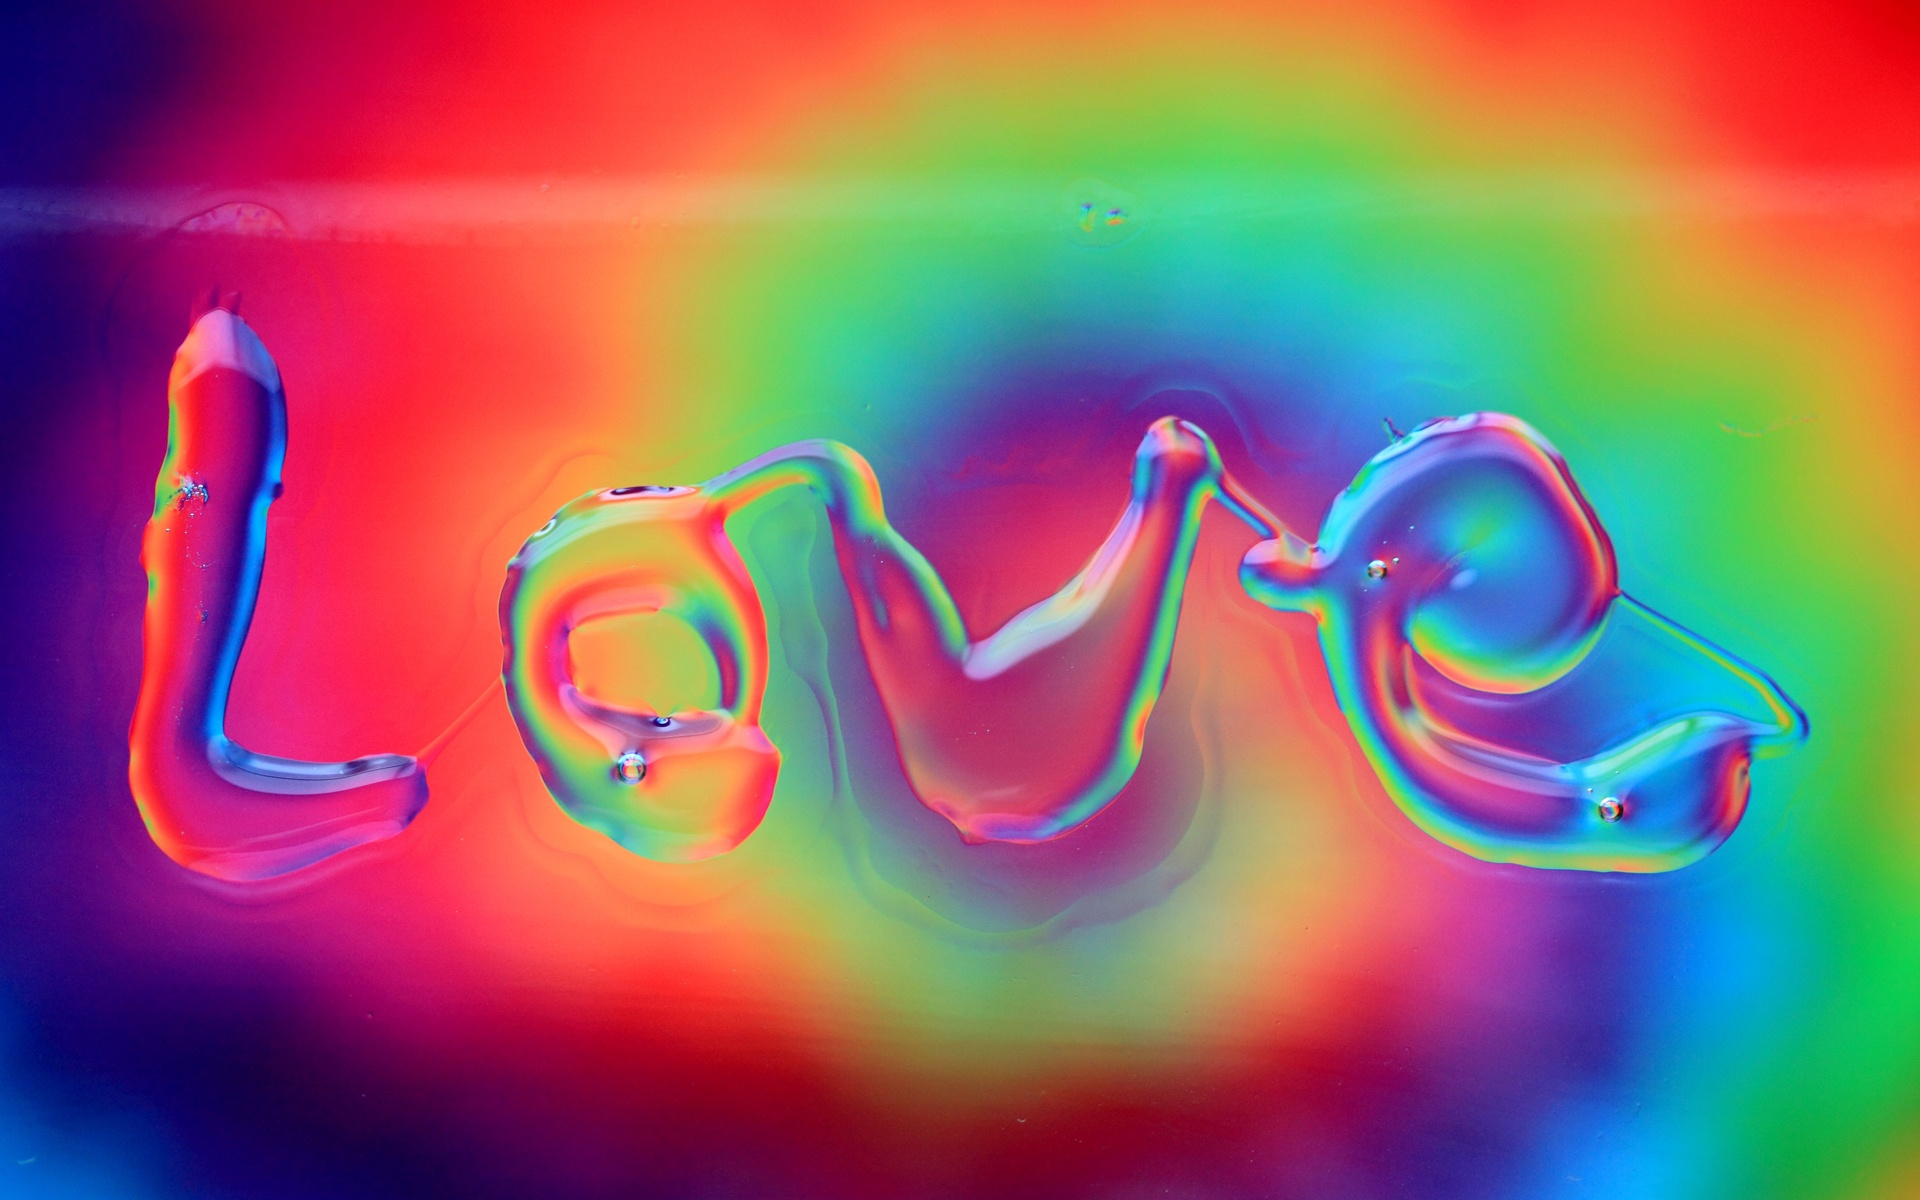 S N Love Images Hd Download Fitrini S Wallpaper